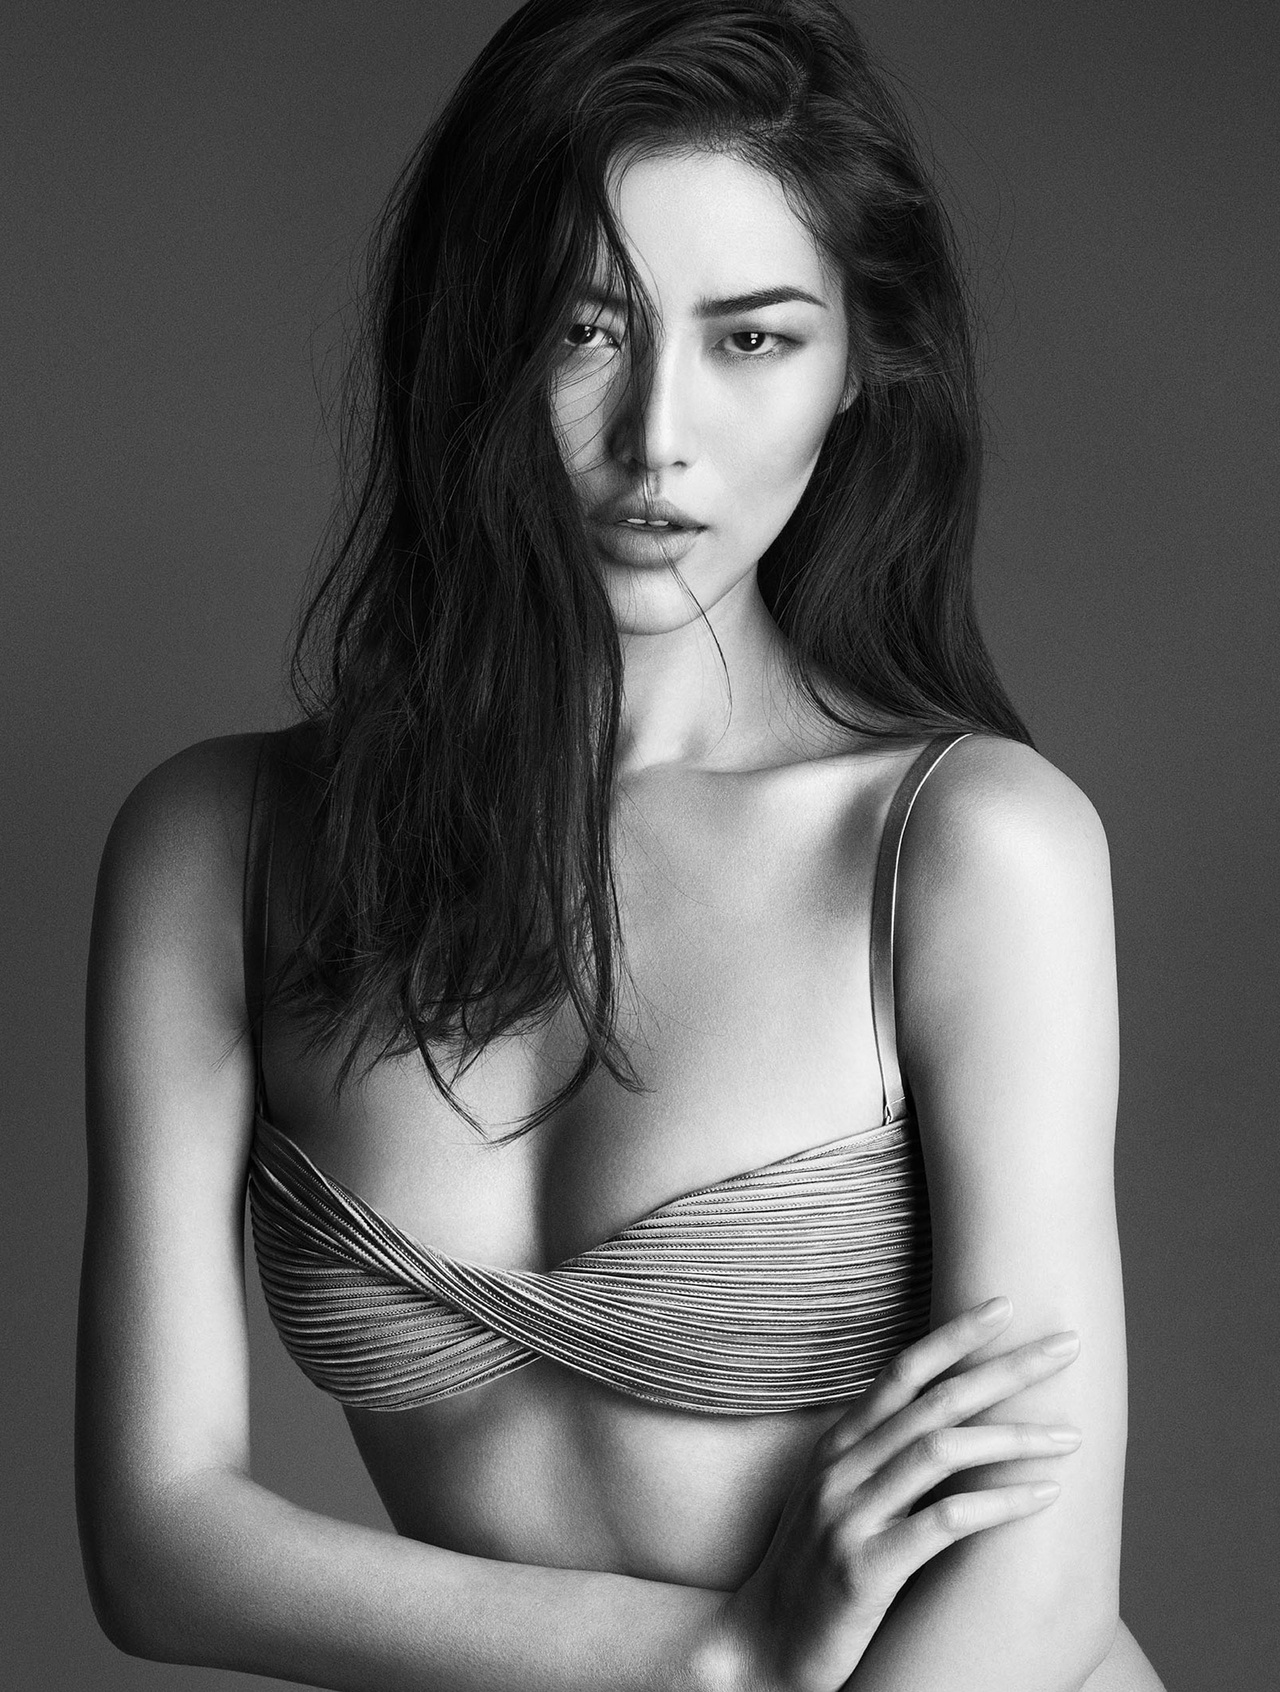 La Perla 2014 Fall/Winter Lingerie Campaign Photos